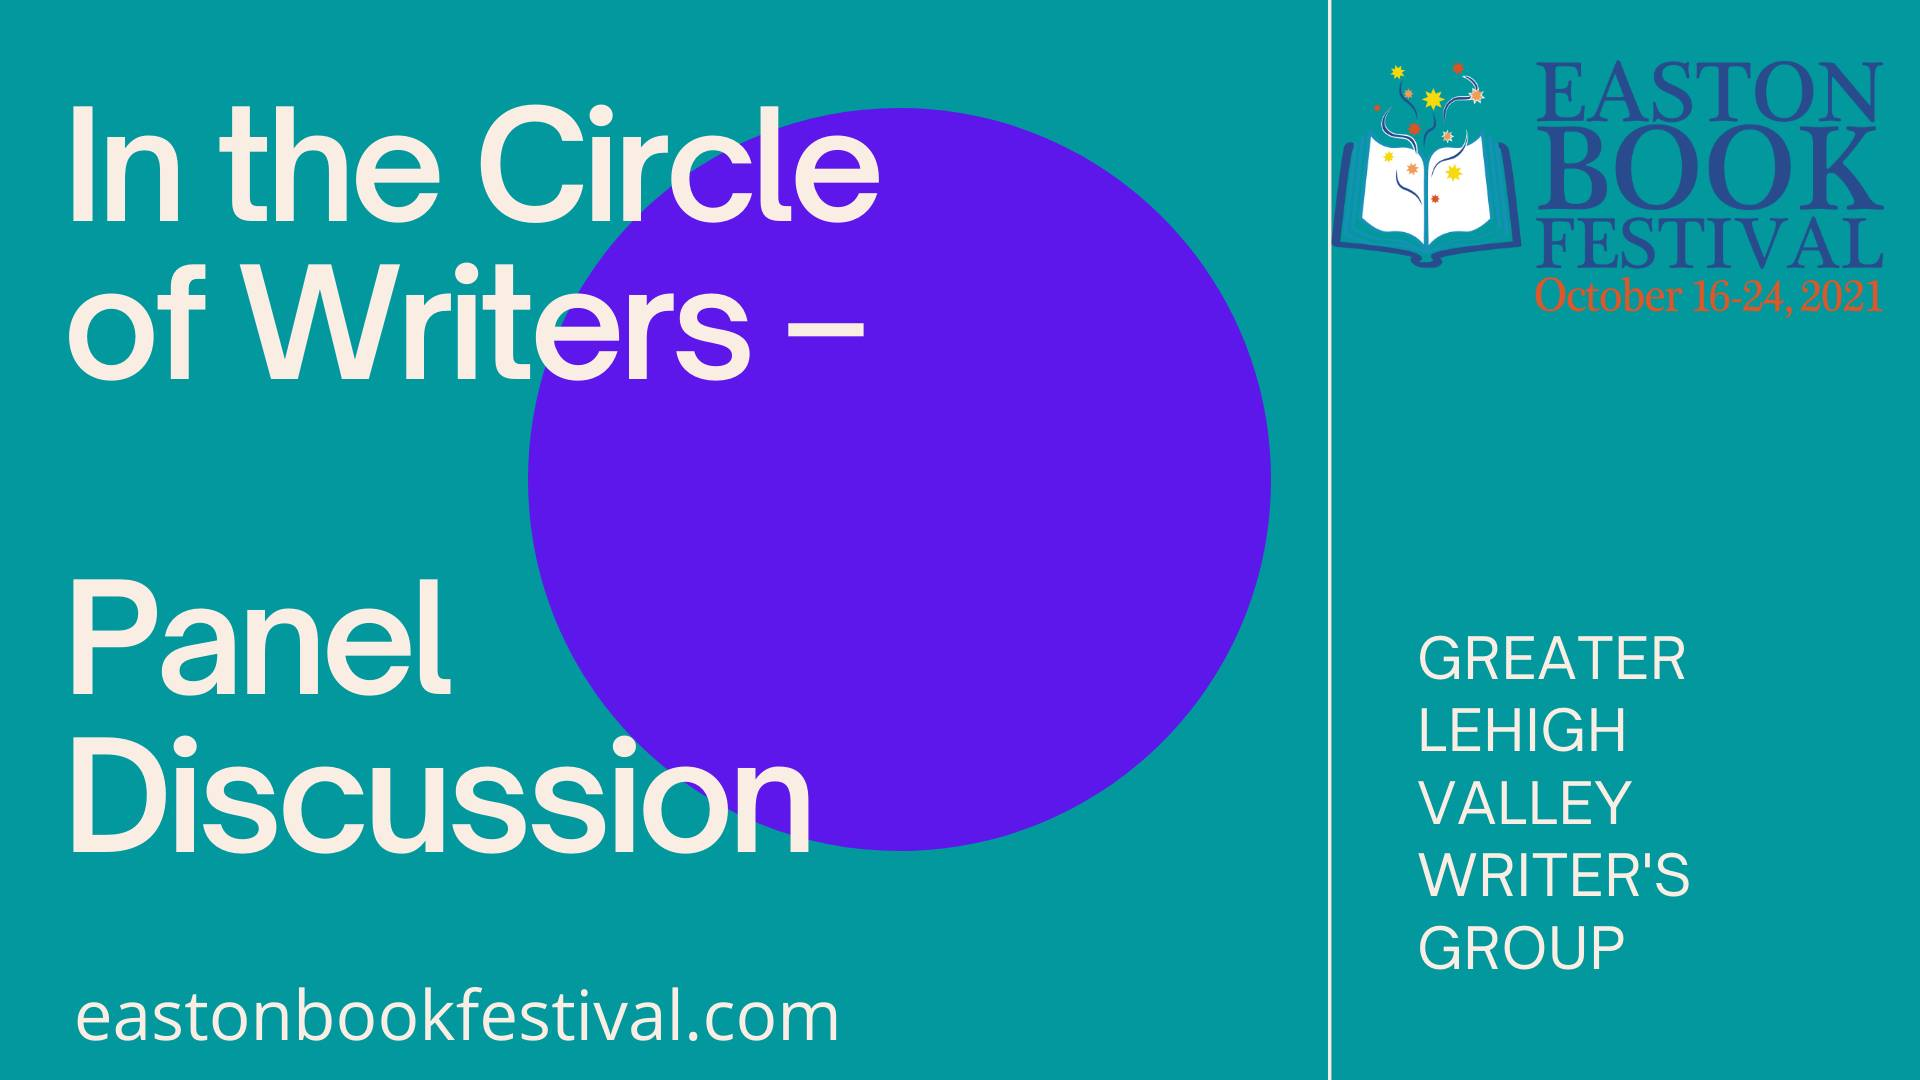 In The Circle of Writers